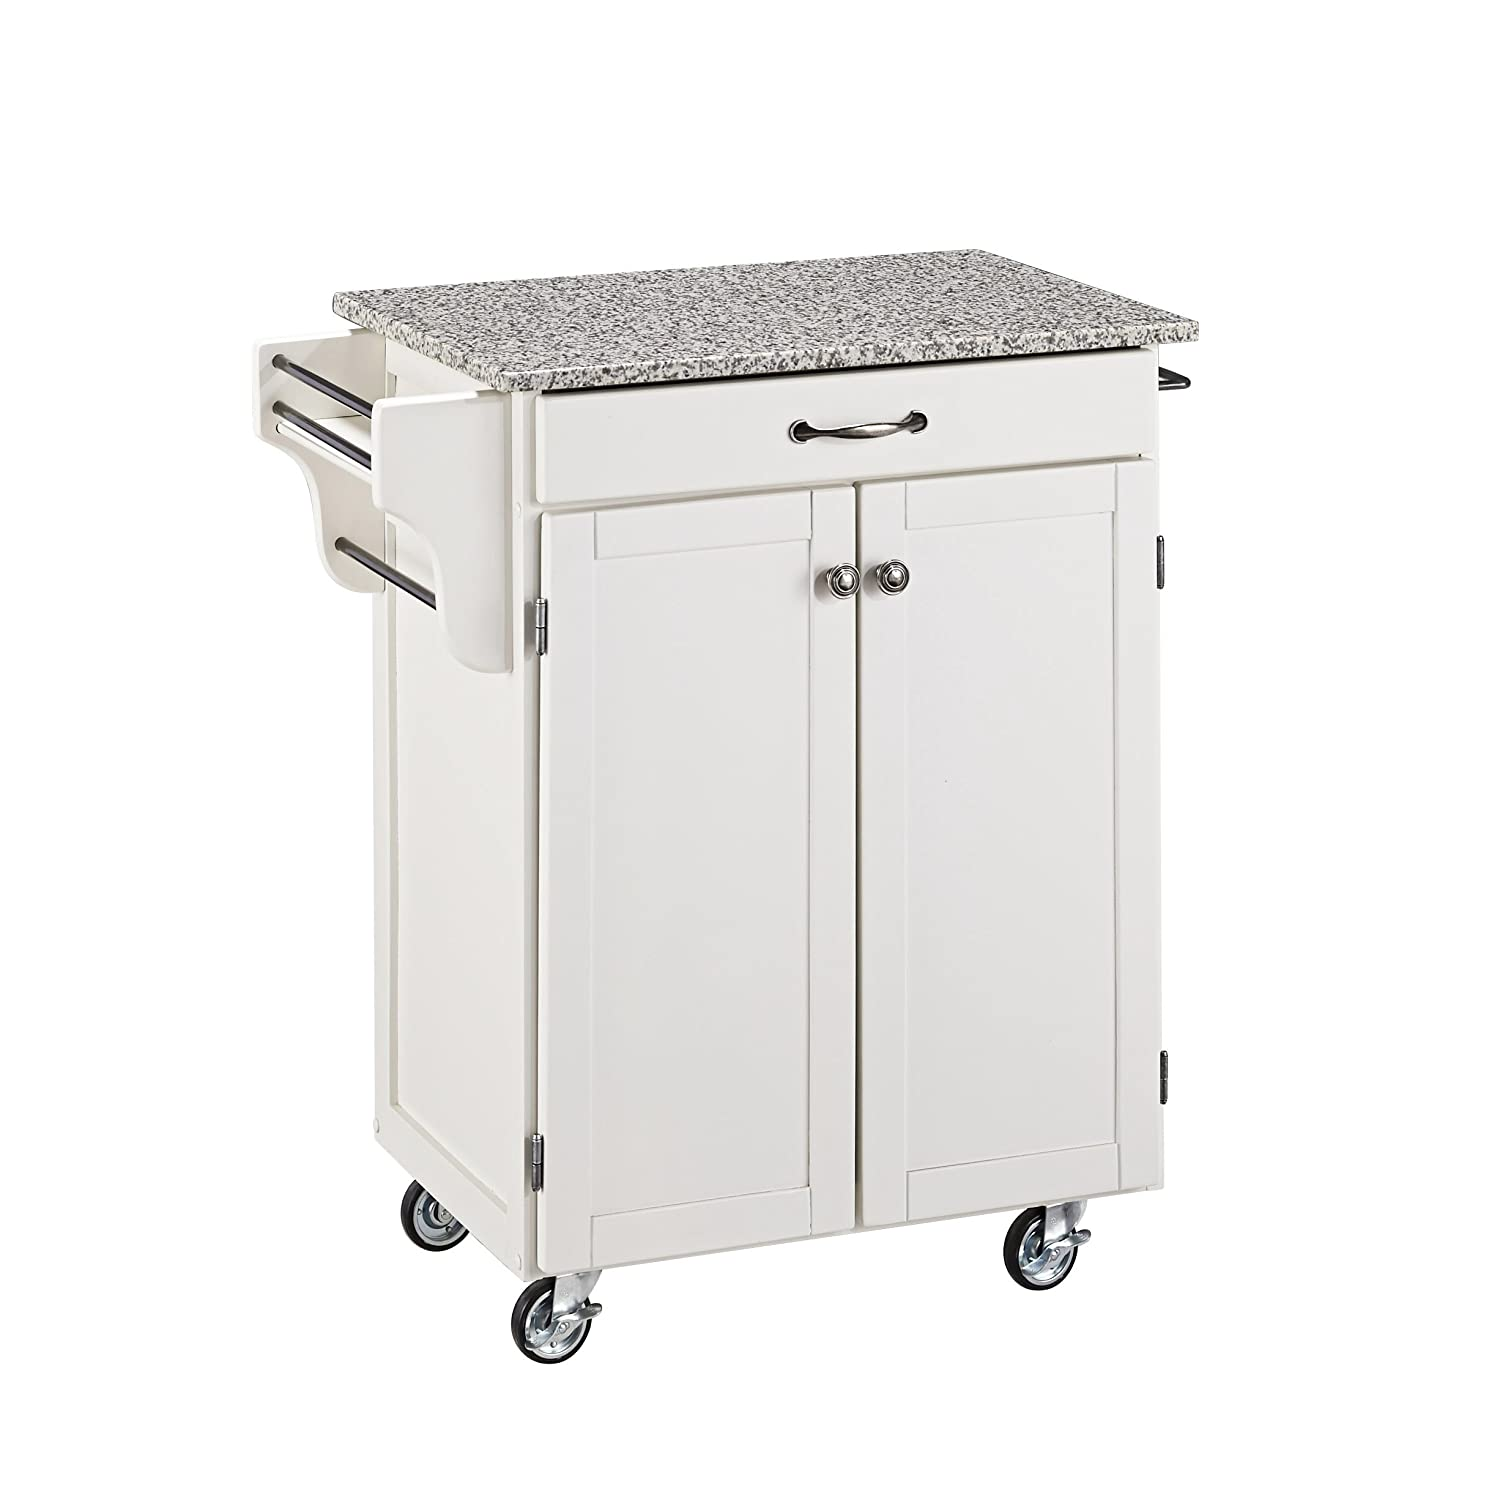 Create-a-cart White Kitchen Cart with Granite Top by Home Styles